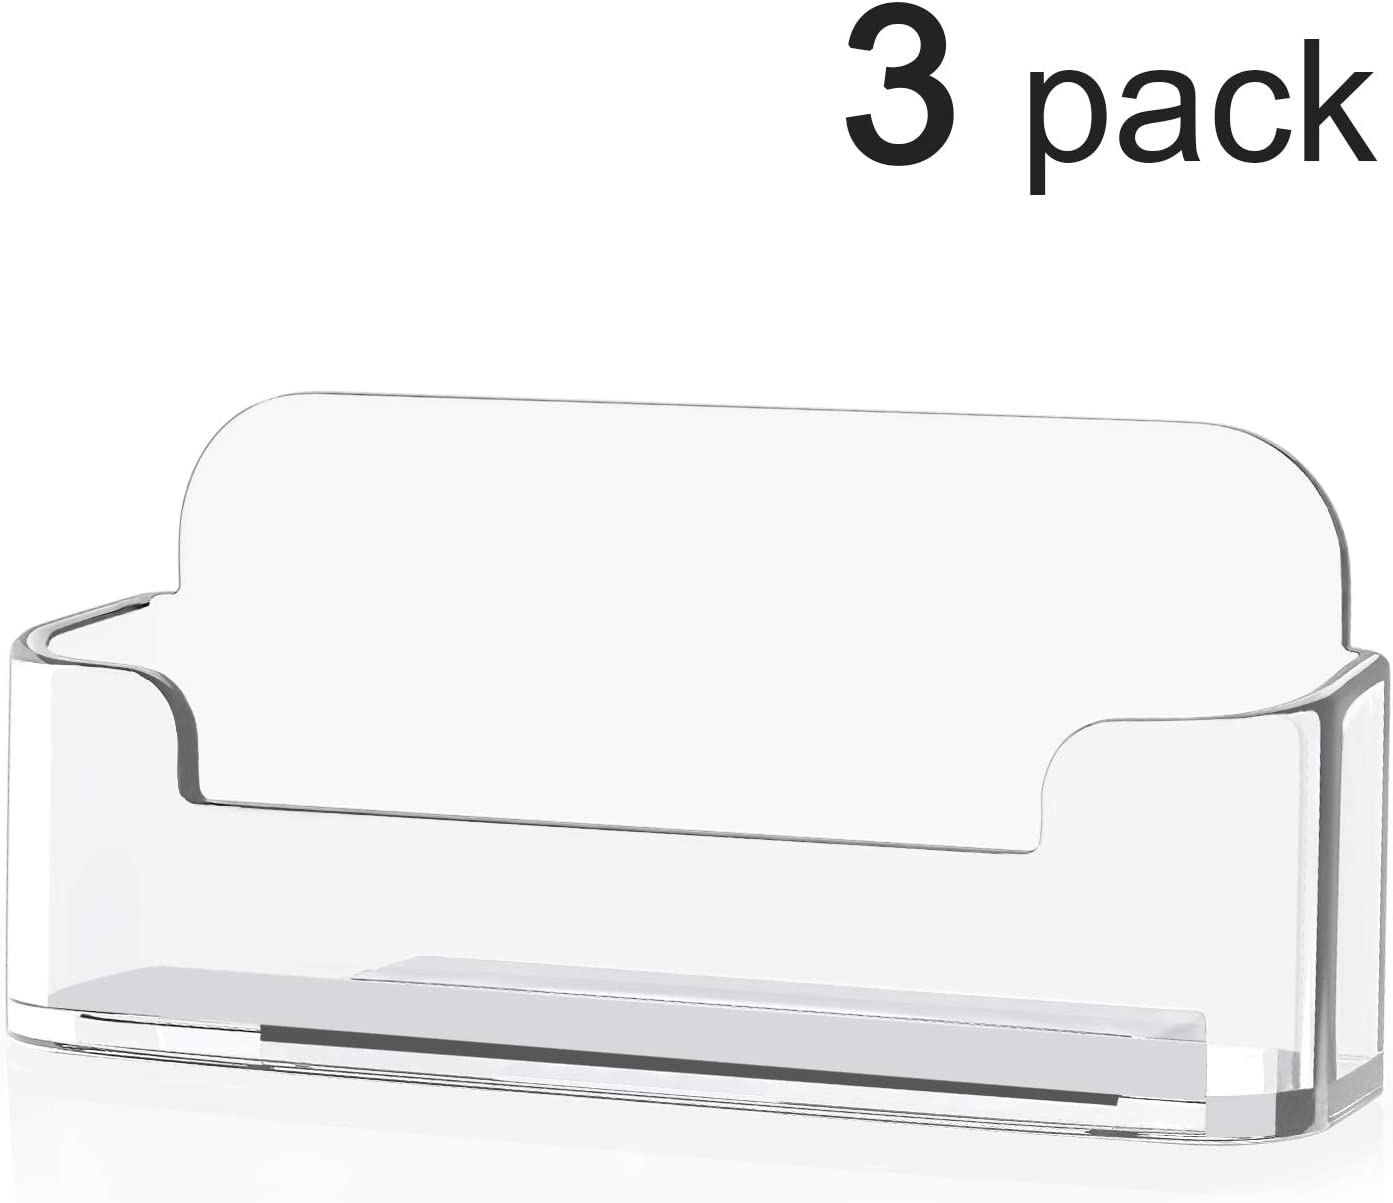 MaxGear 3 Pack Acrylic Business Card Holder for Desk Plastic Business Card Display Clear Business Card Holders for Author Ev, 3.8 x 1.9 x 1.4 inches